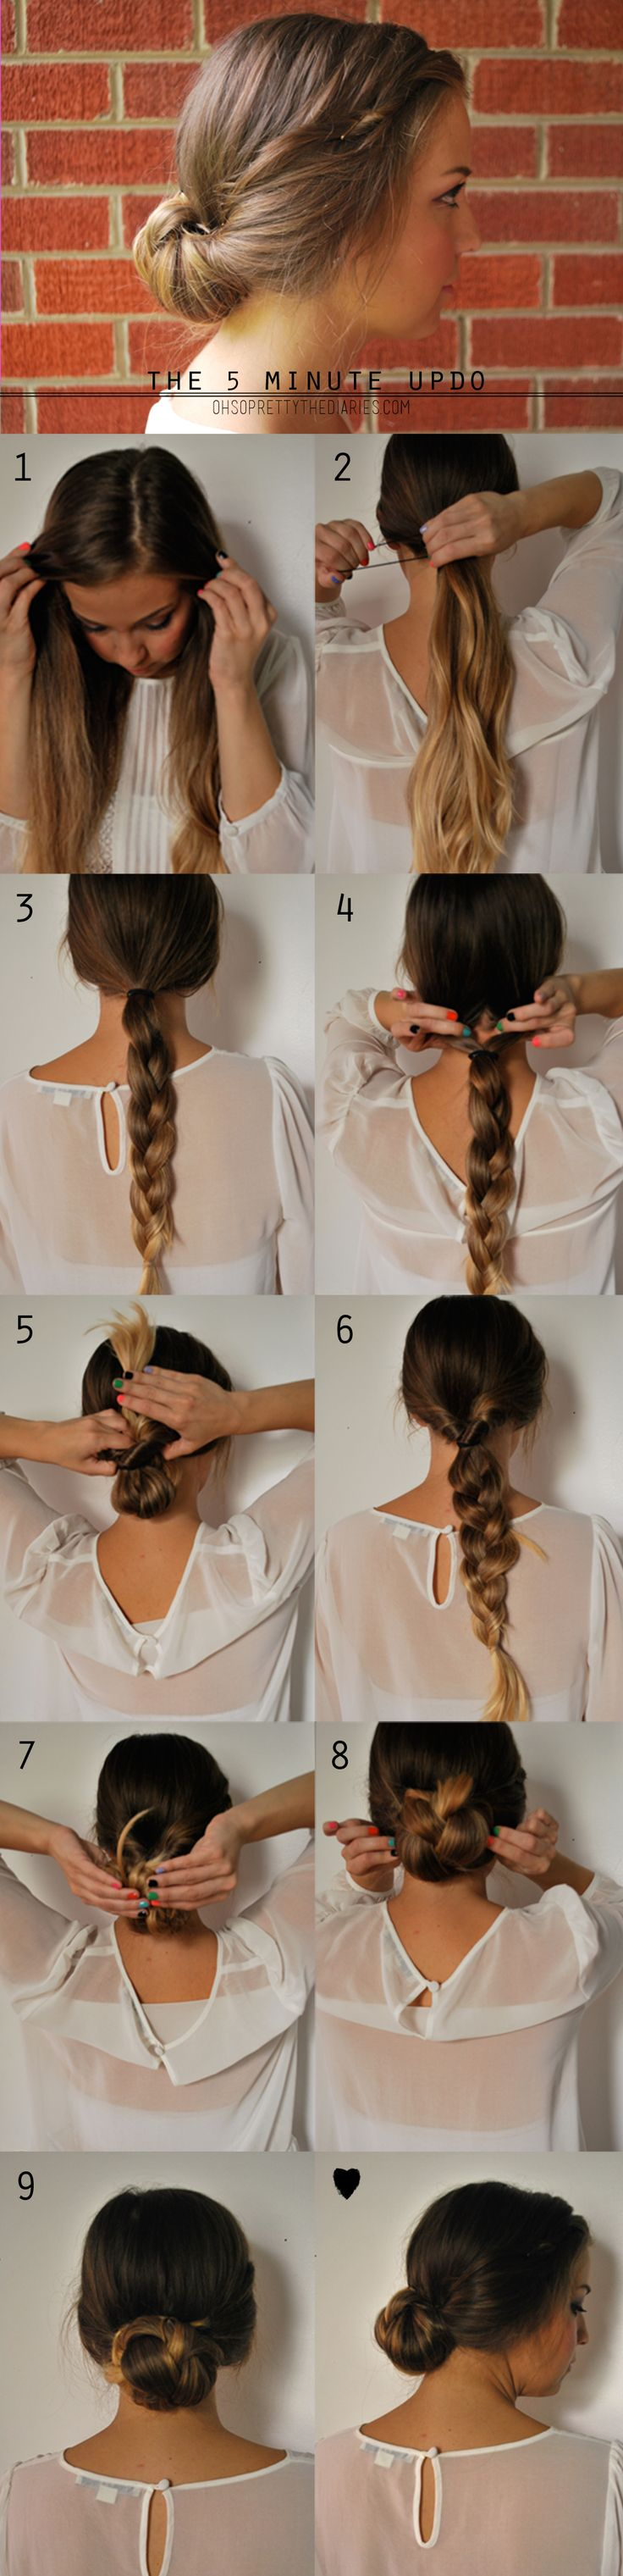 Of course right after I cut off 6 inches I find super cute stuff for long hair!! the 5 minute updo: braided gibson tuck #hair #tutorial